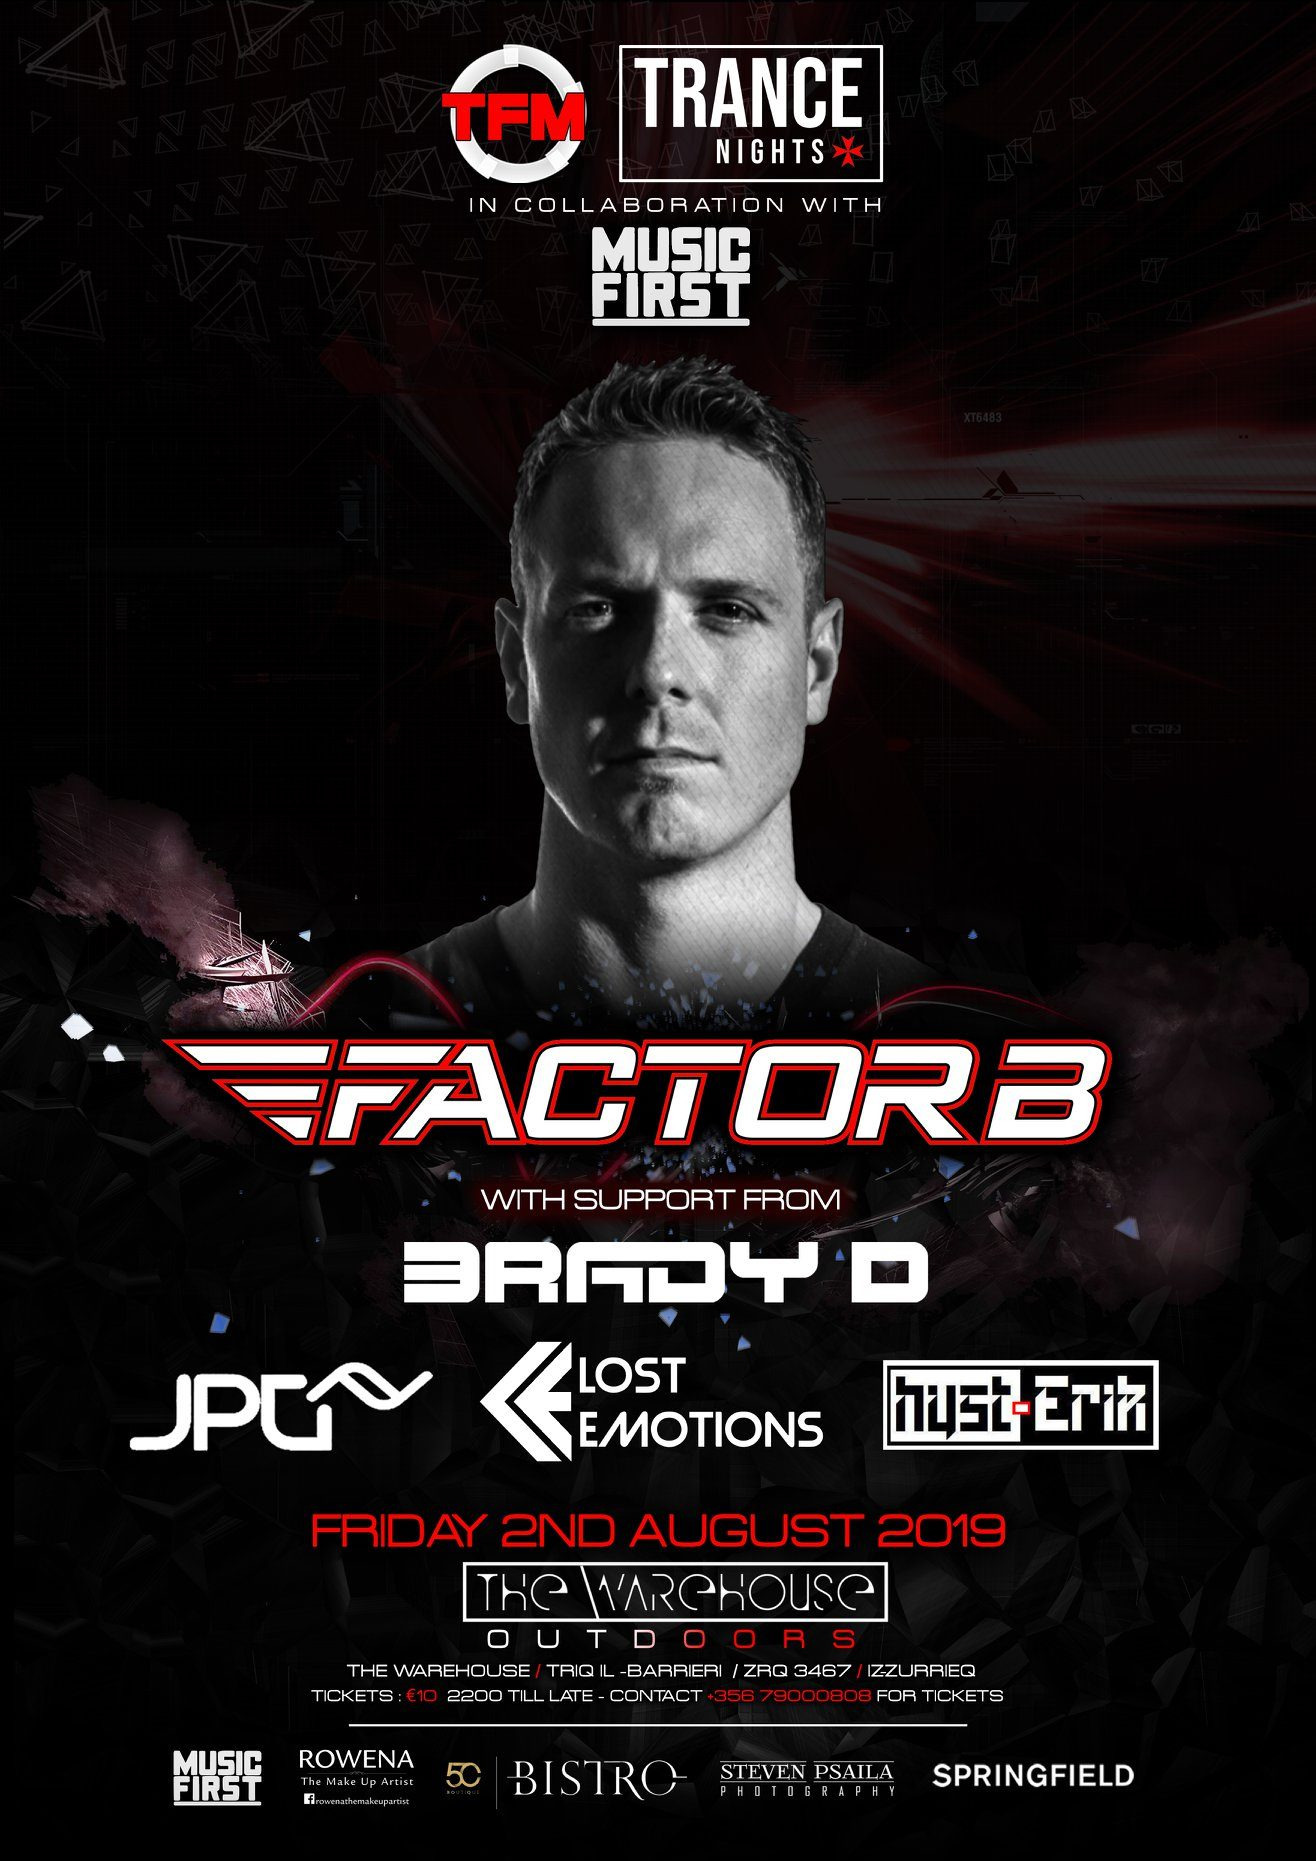 Elate feat Factor B flyer